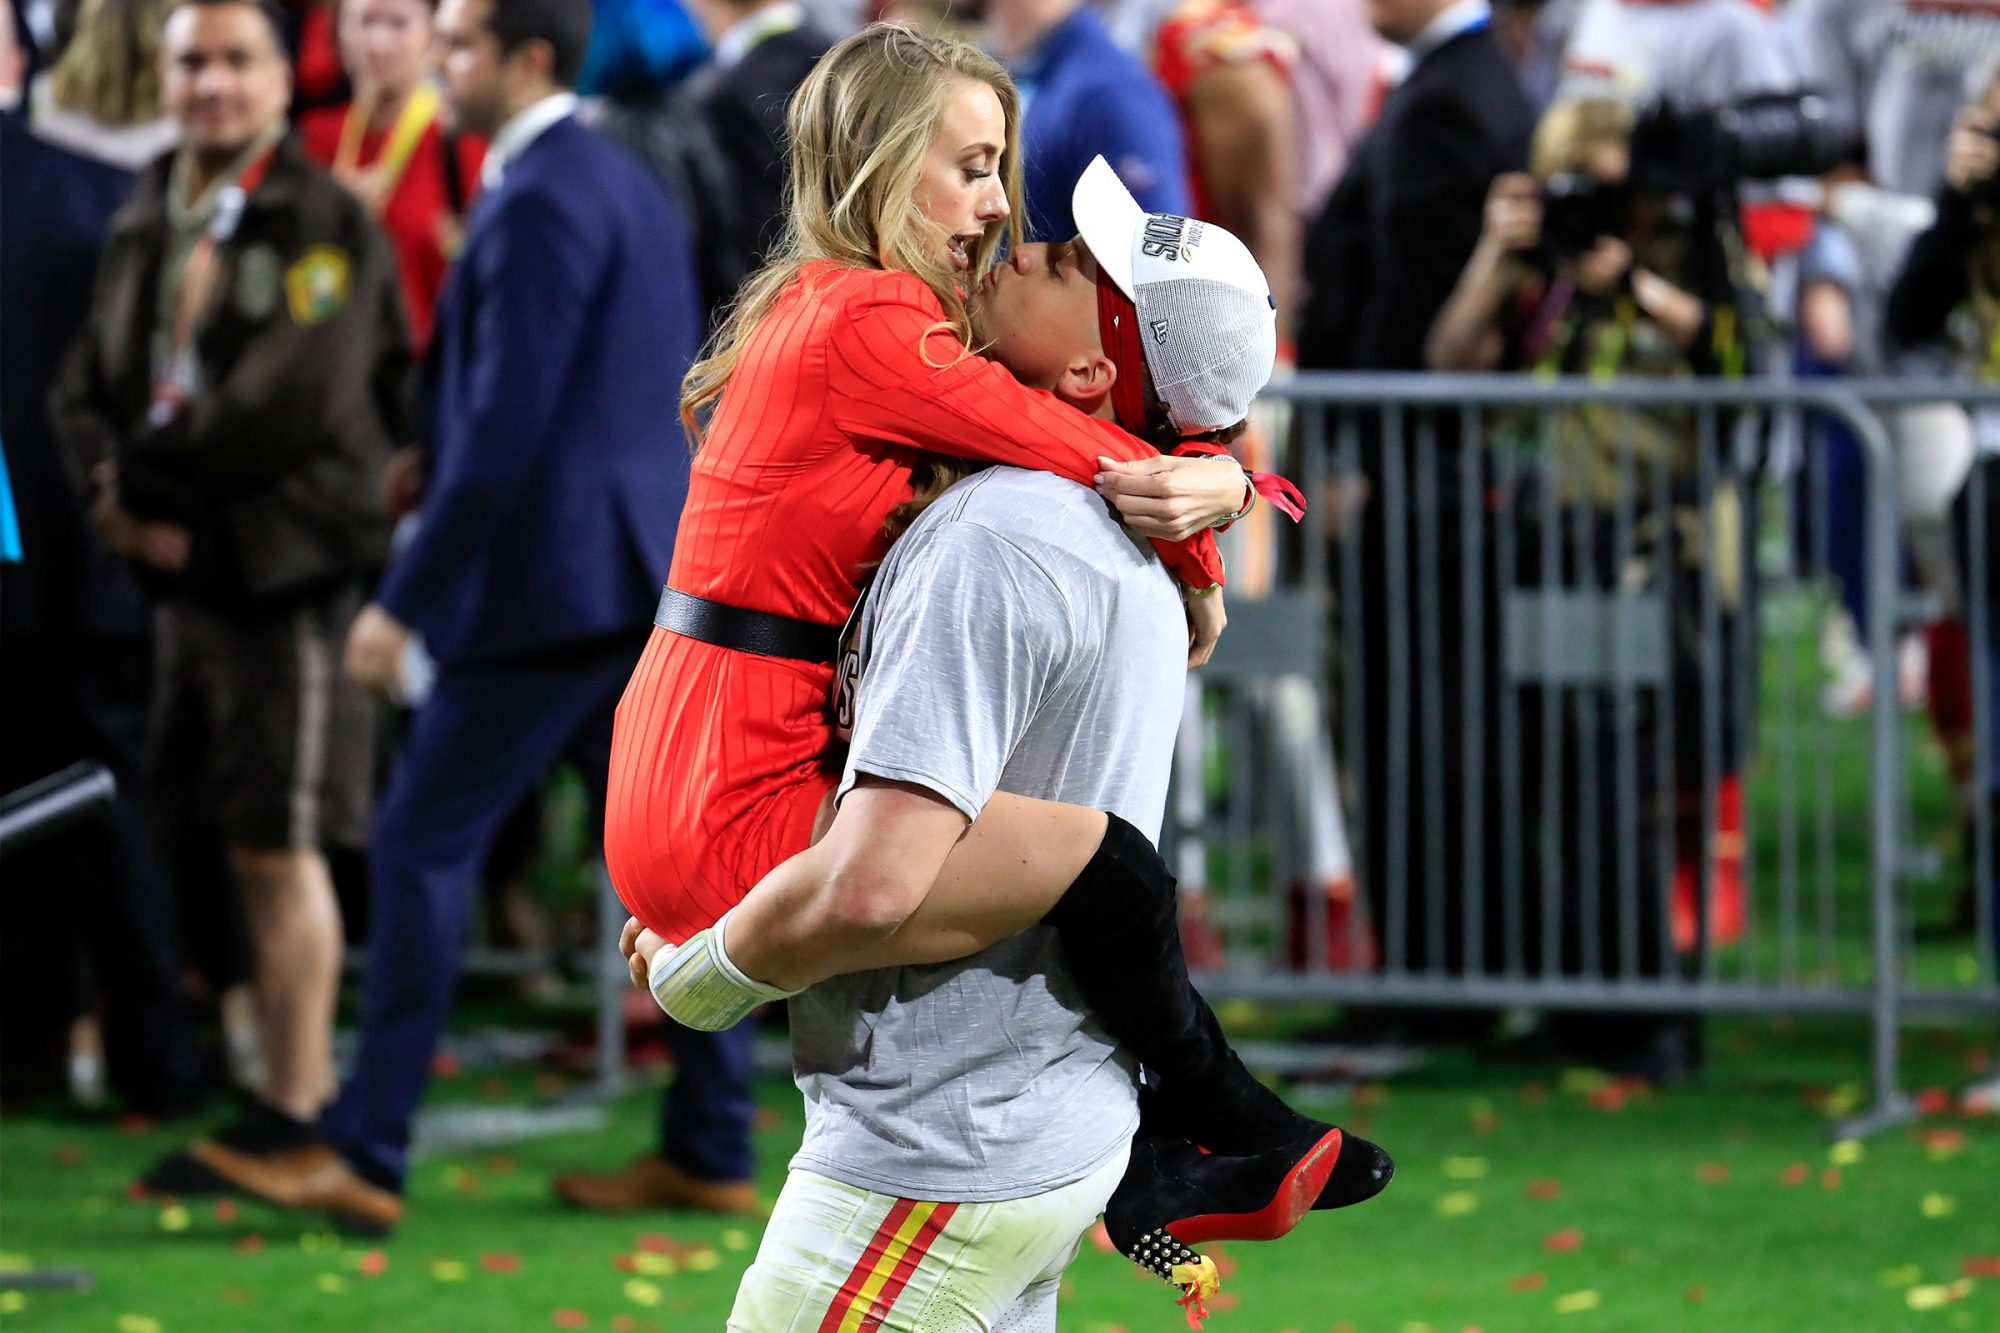 Patrick Mahomes #15 of the Kansas City Chiefs celebrates with his girlfriend, Brittany Matthews